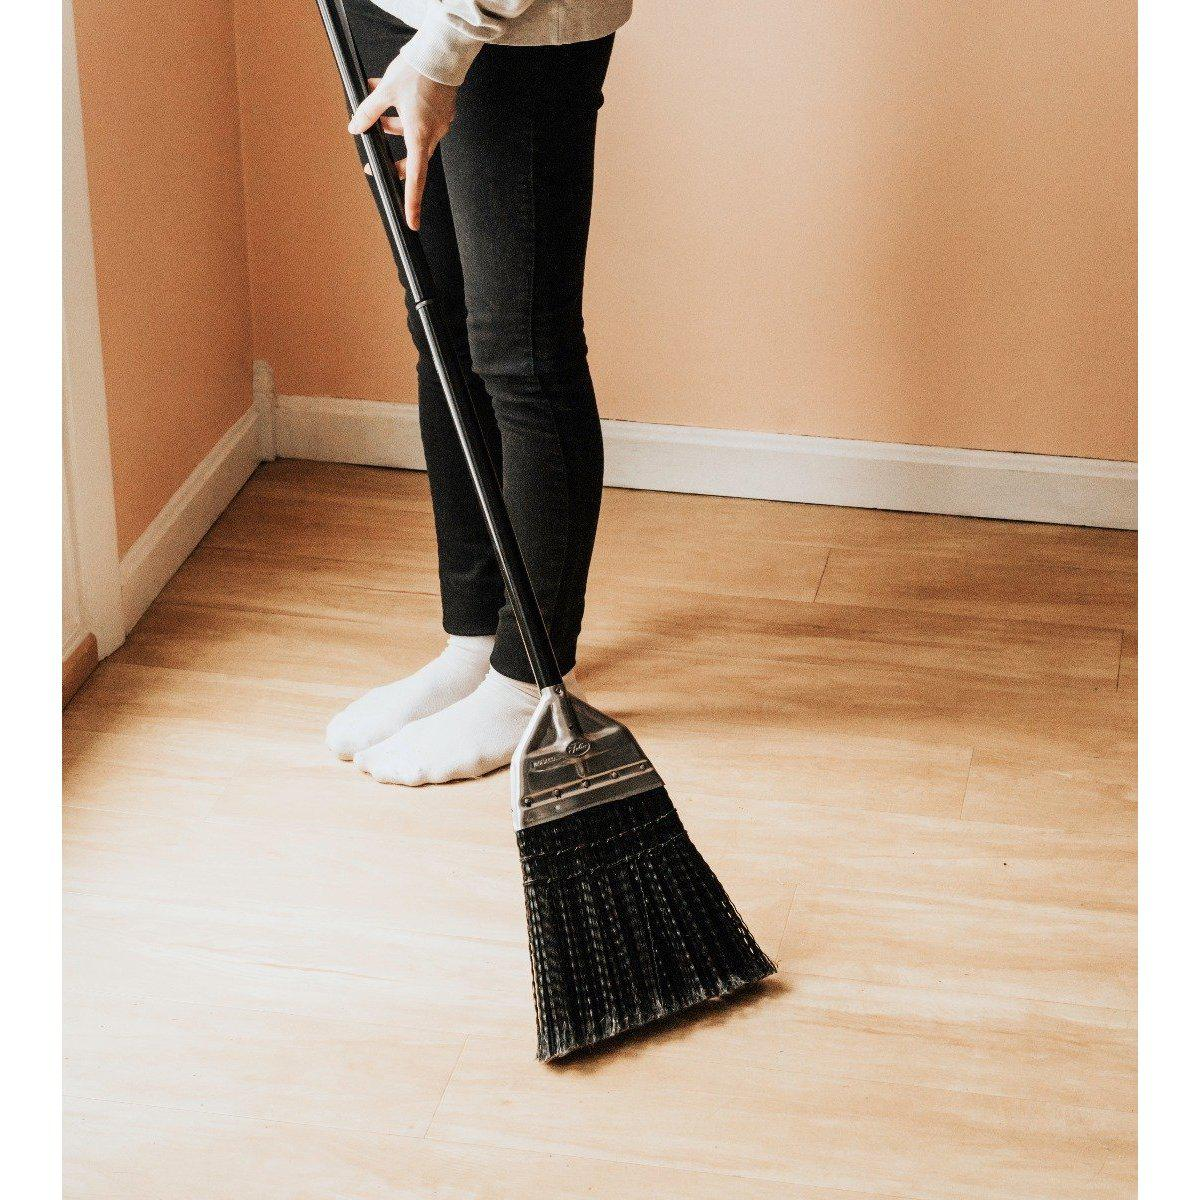 Household Broom With Long lasting Polypropylene Bristles Indoor/Outdoor-Brooms-Fuller Brush Company